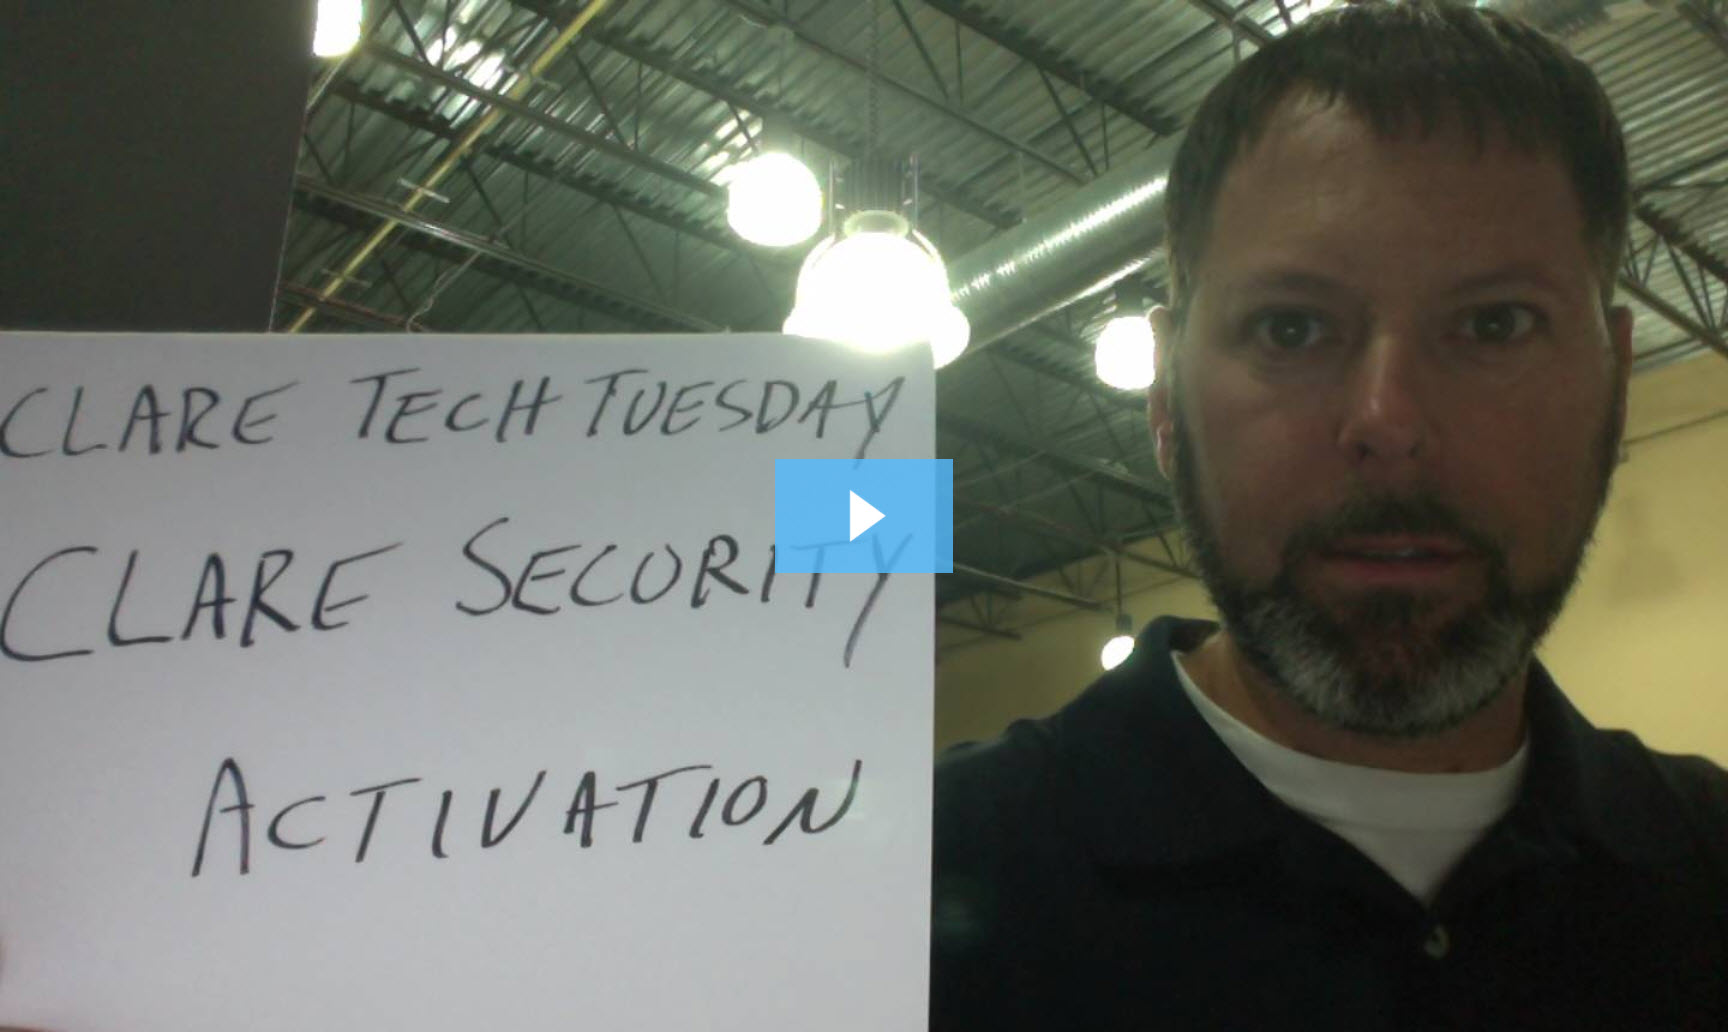 Clare Tech Tuesday: Clare Security Activation